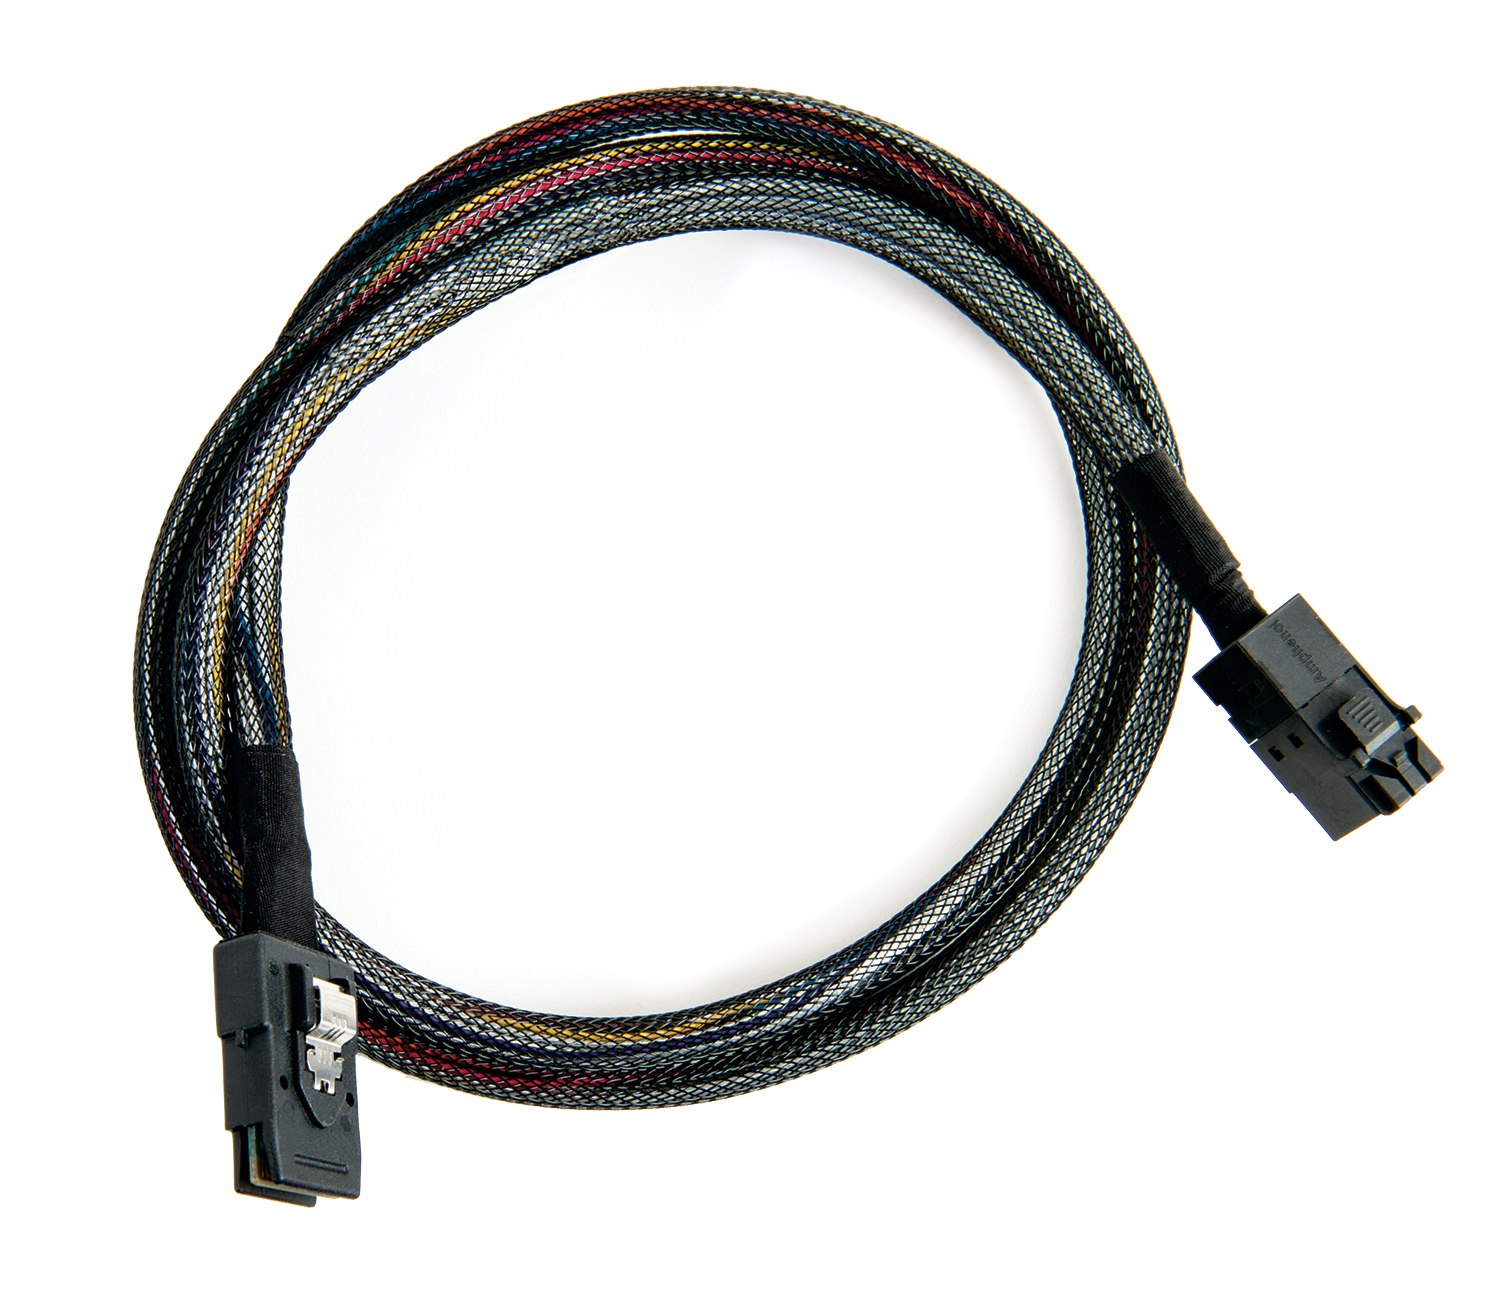 Internal Hd SAS Cable Ack-i-hdmsas-msas-1m